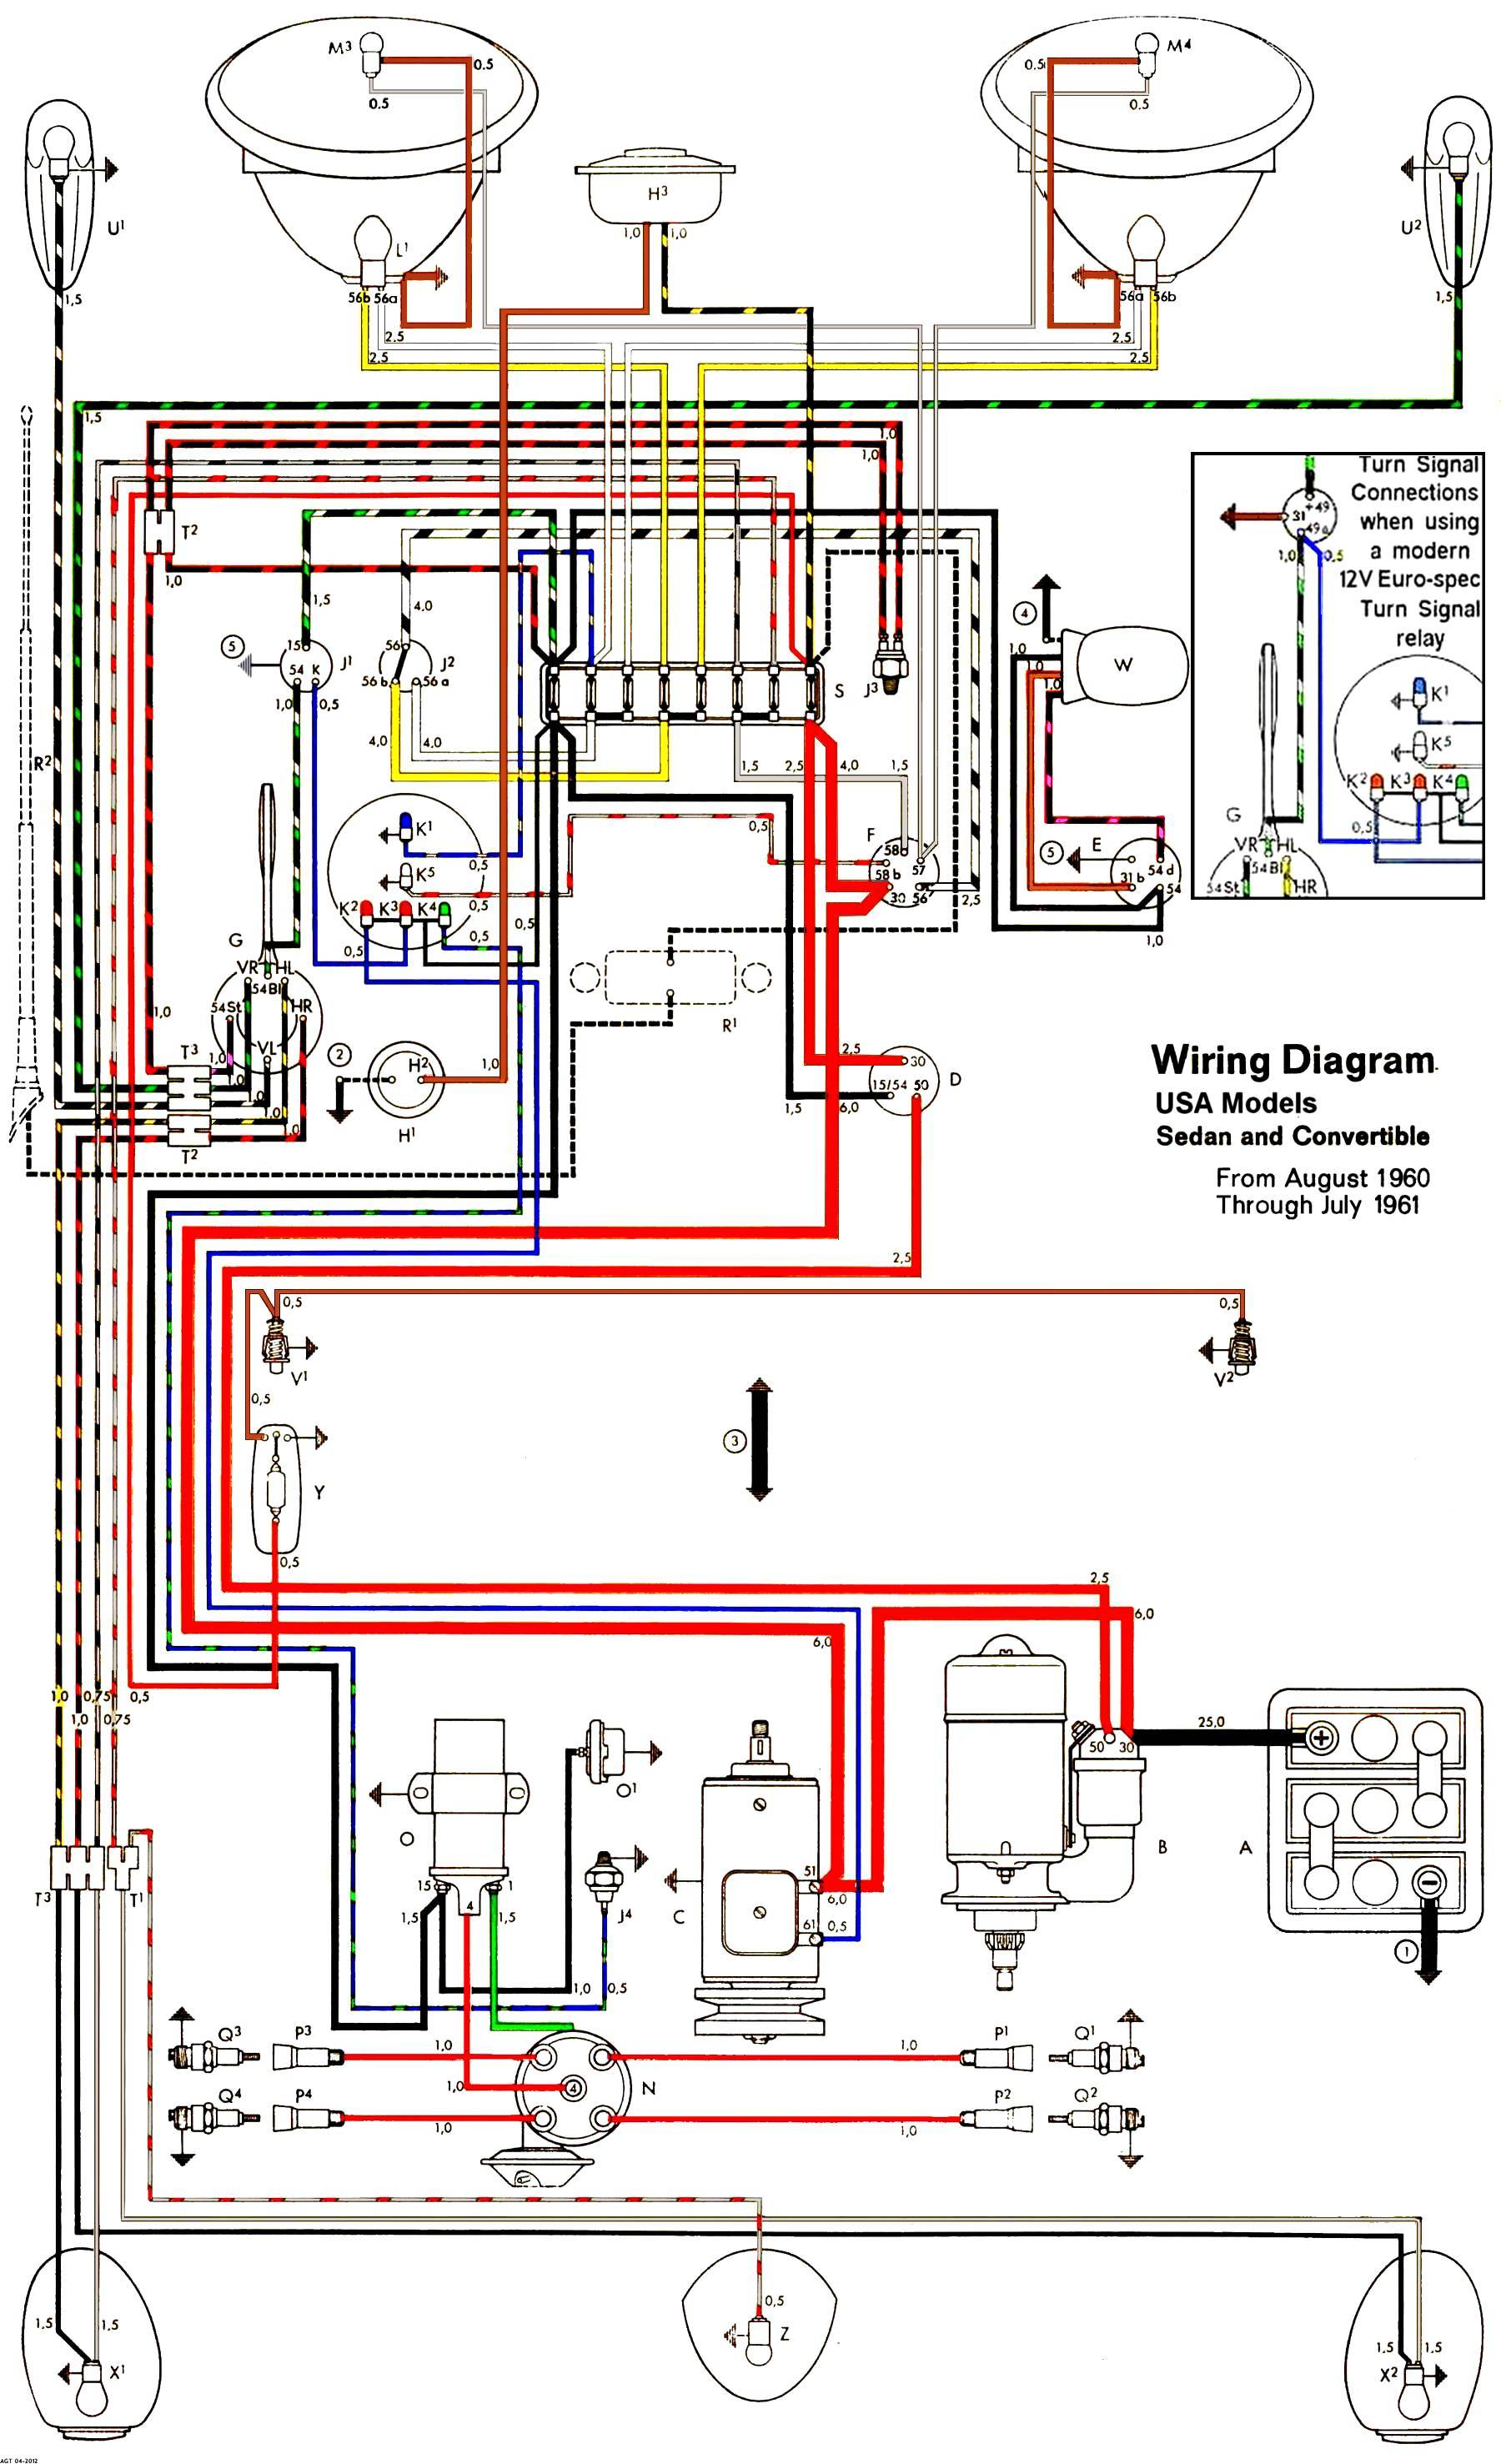 1998 dodge durango wiring harness thesamba com type 1 wiring diagrams aprilia wiring harness